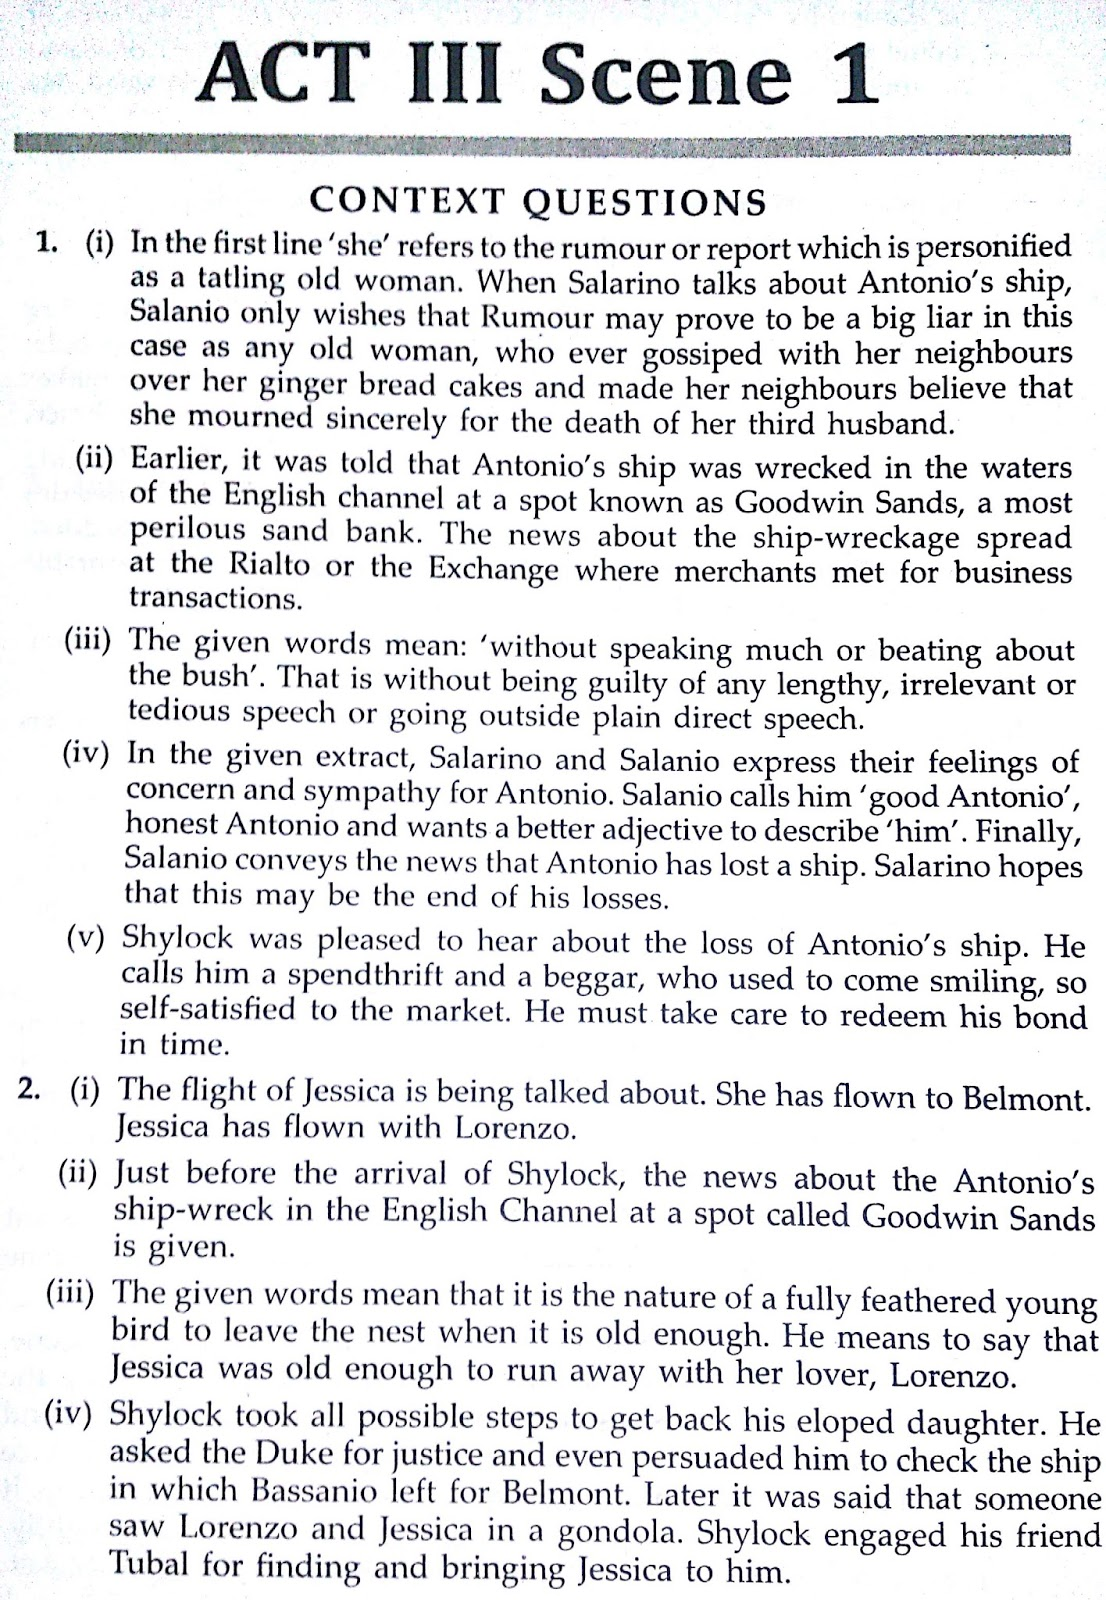 Workbook Answers/ Solutions of The Merchant of Venice, Act 3 Scene 1